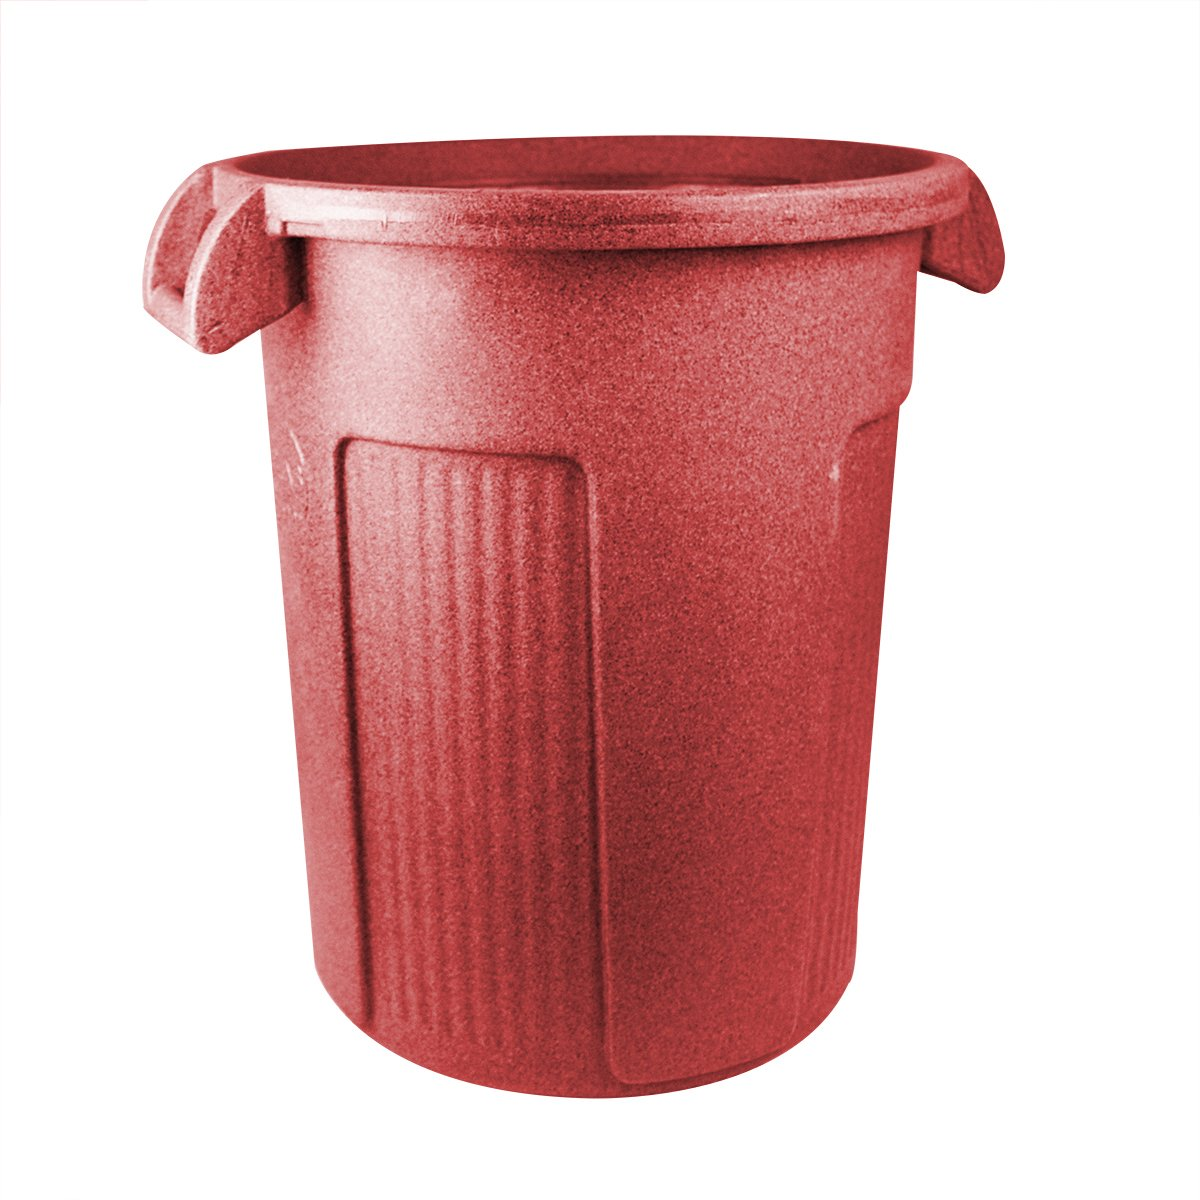 UltraSource Commercial Atlas Waste Container, 32 gal, Red